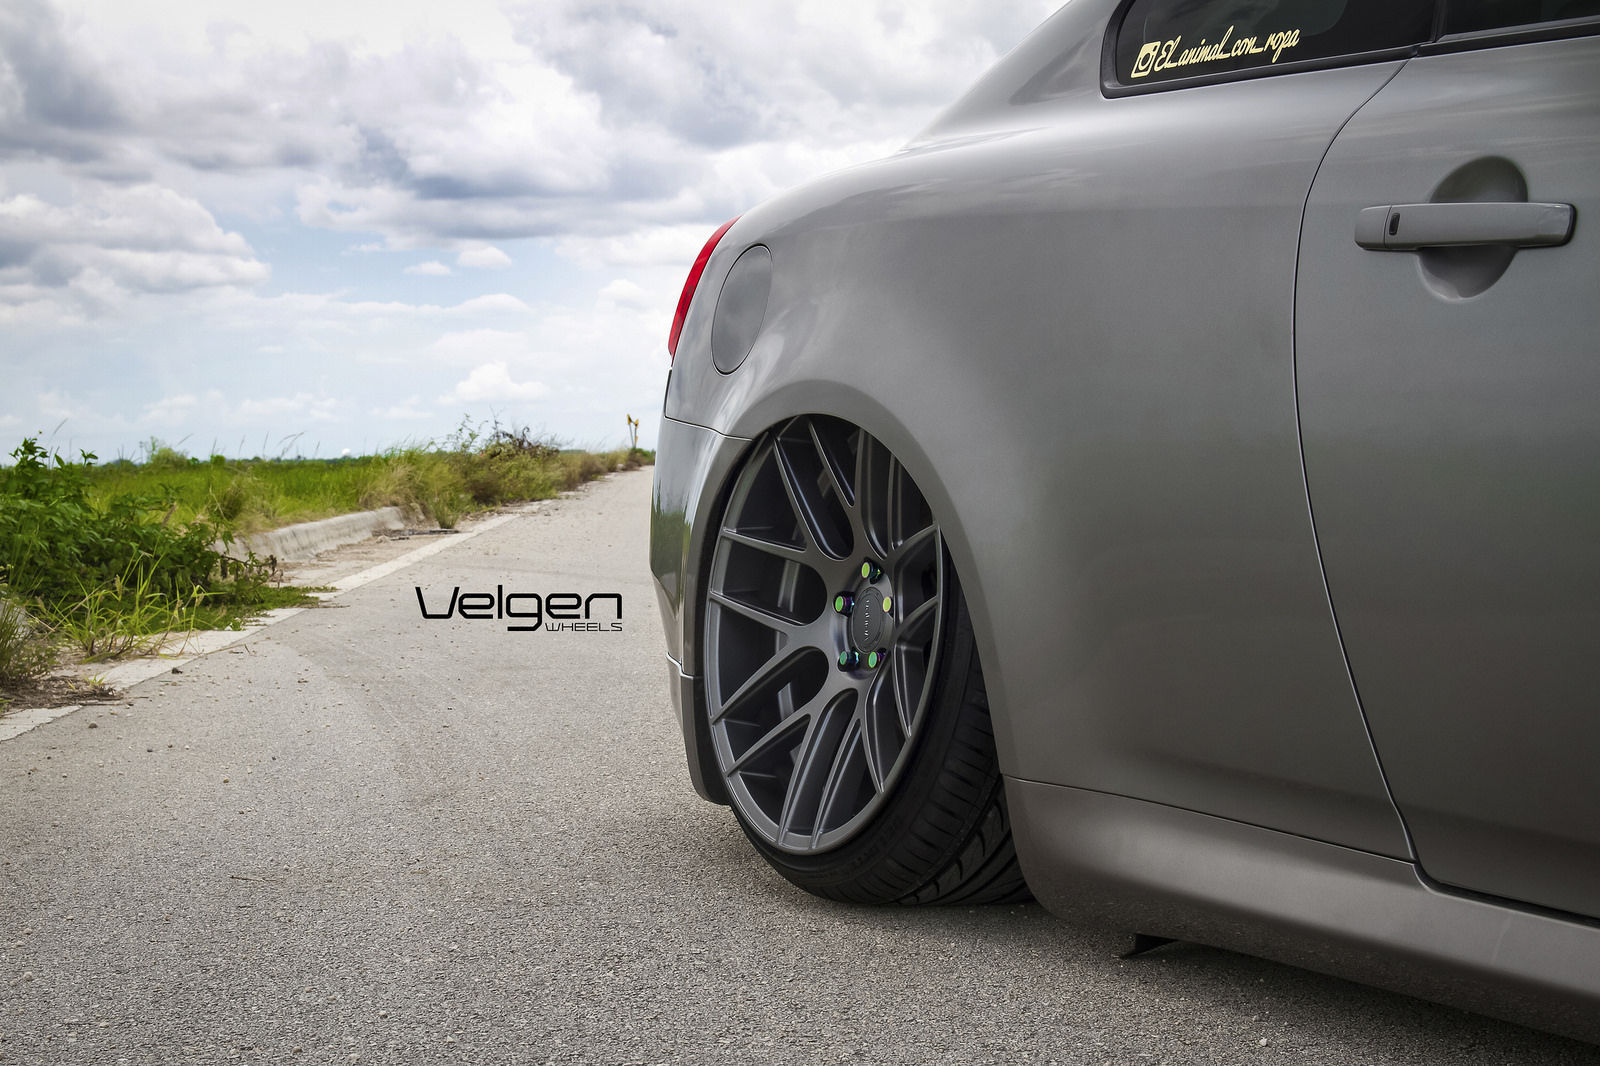 Infiniti G37 Coupe | Bagged Infiniti G37s on Velgen Wheels VMB7 - Tucked In